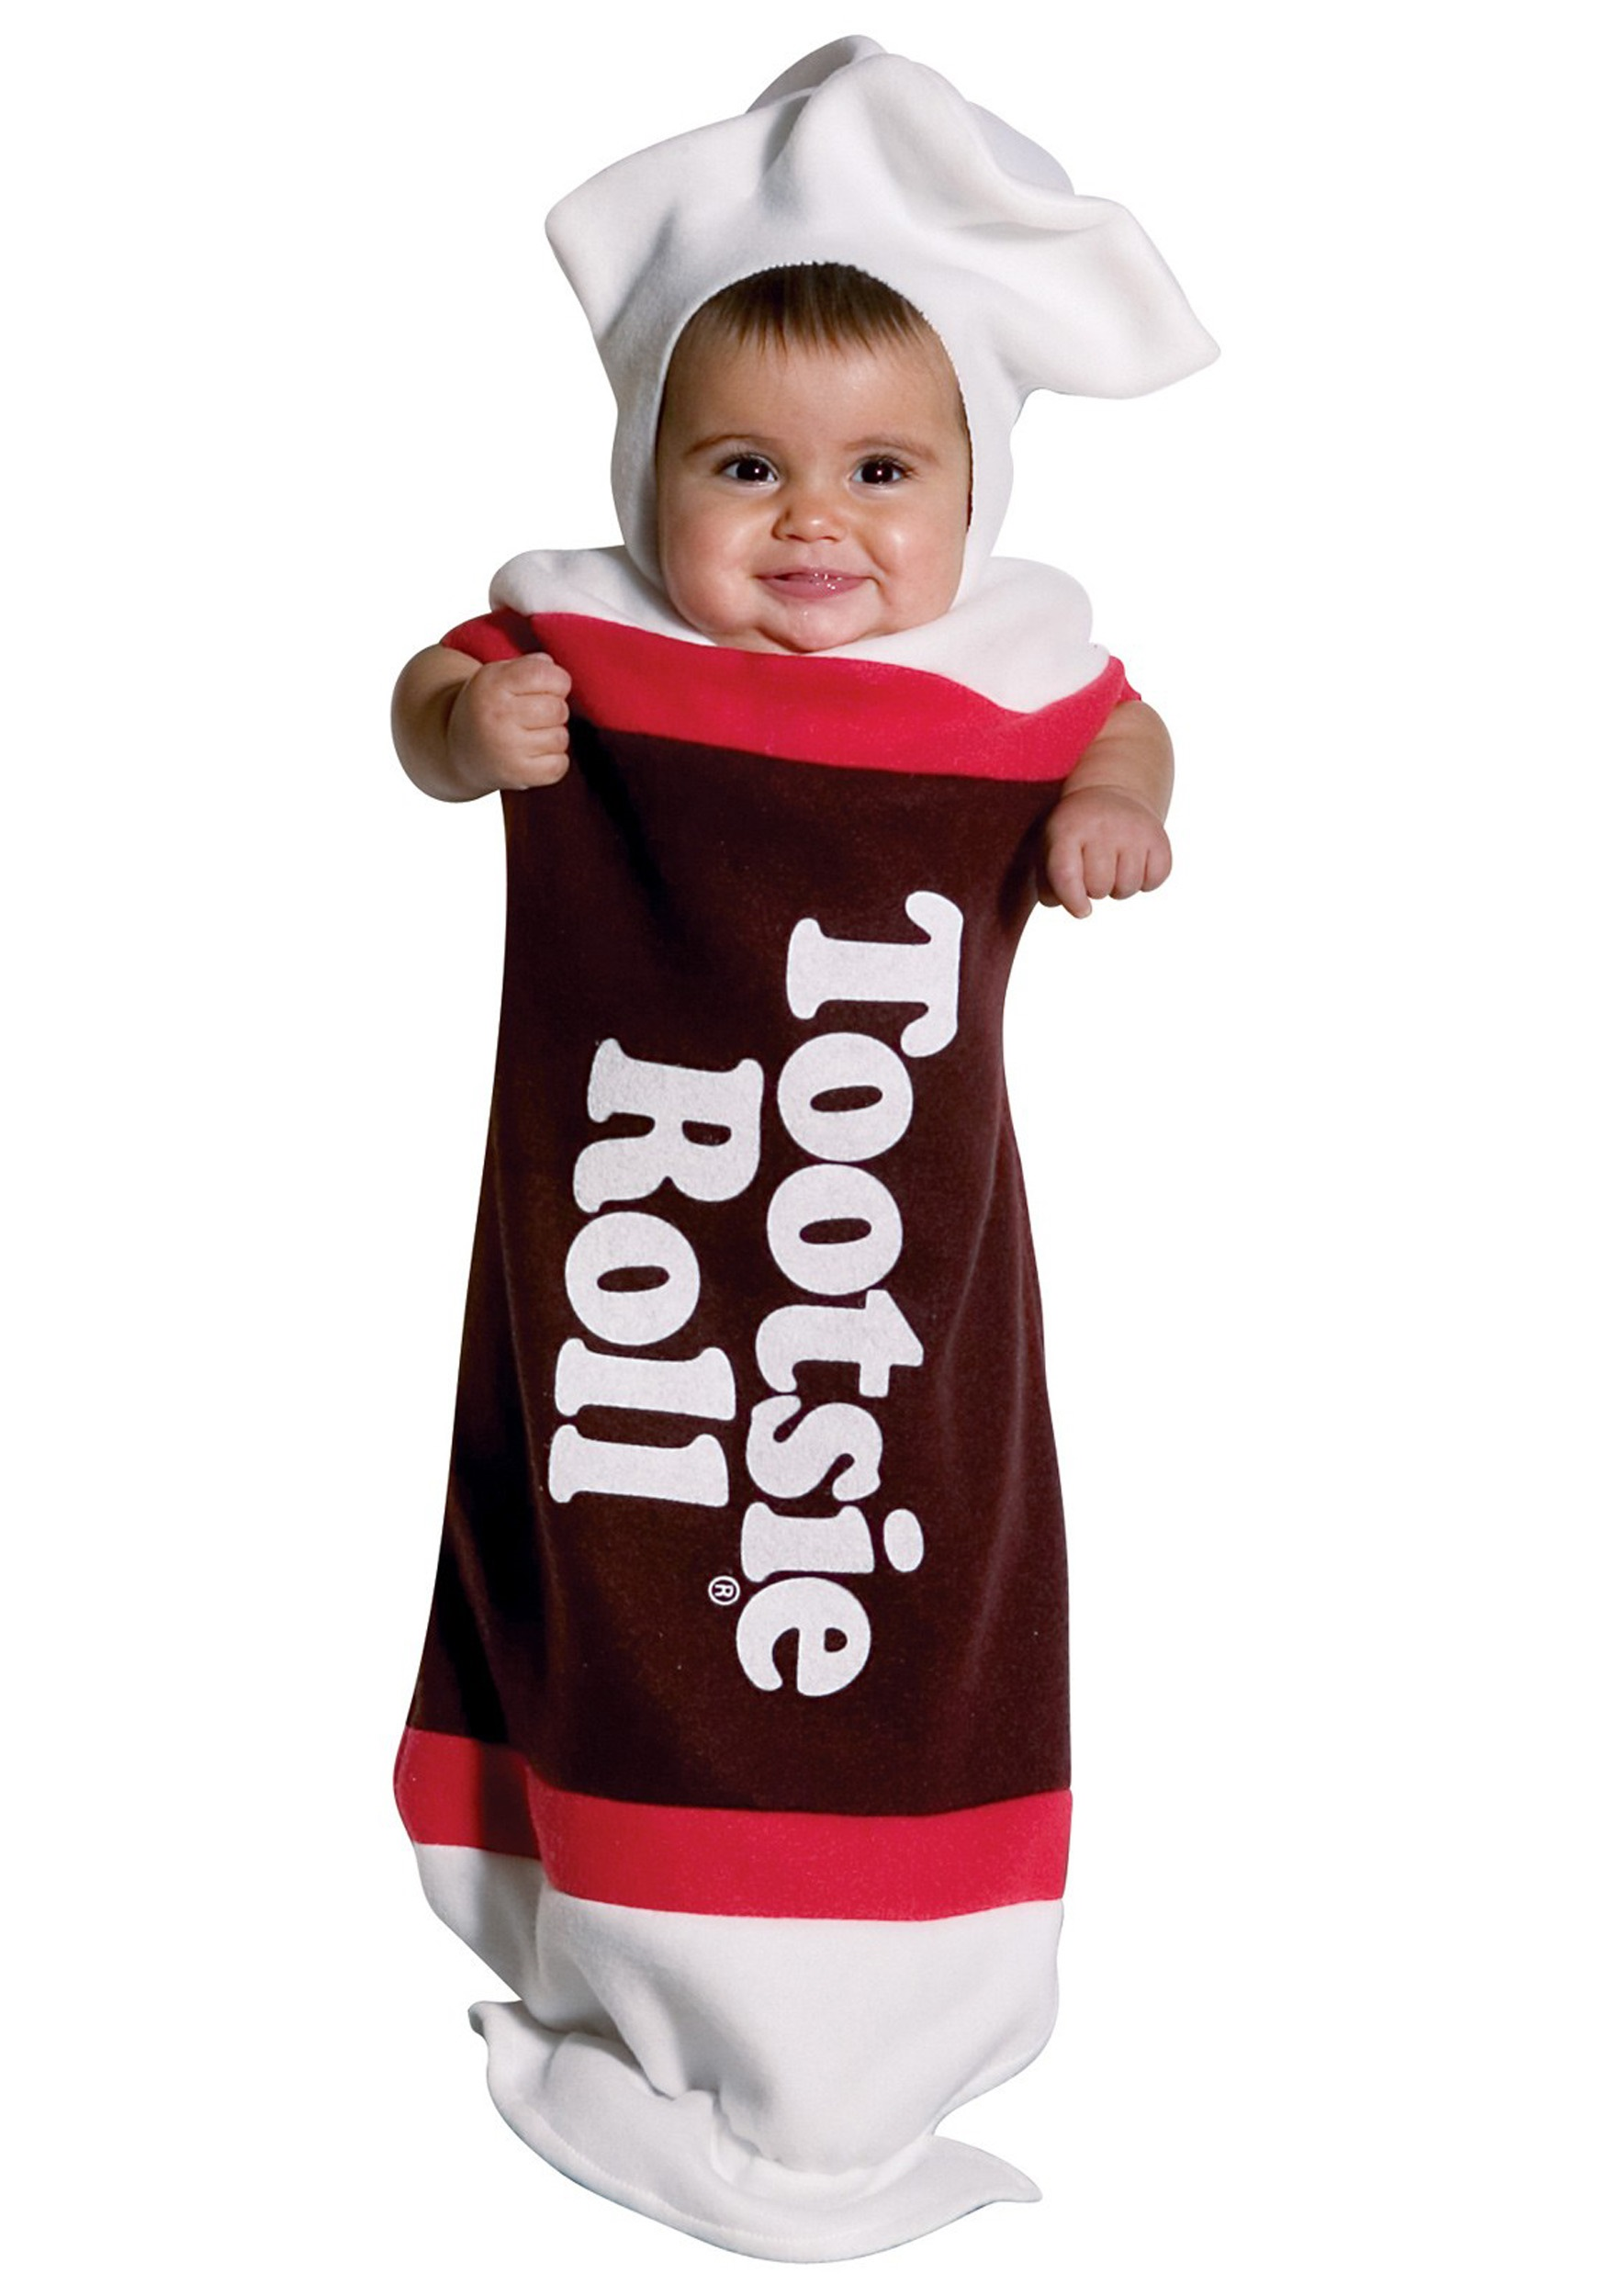 baby tootsie roll costume infant classic candy halloween. Black Bedroom Furniture Sets. Home Design Ideas